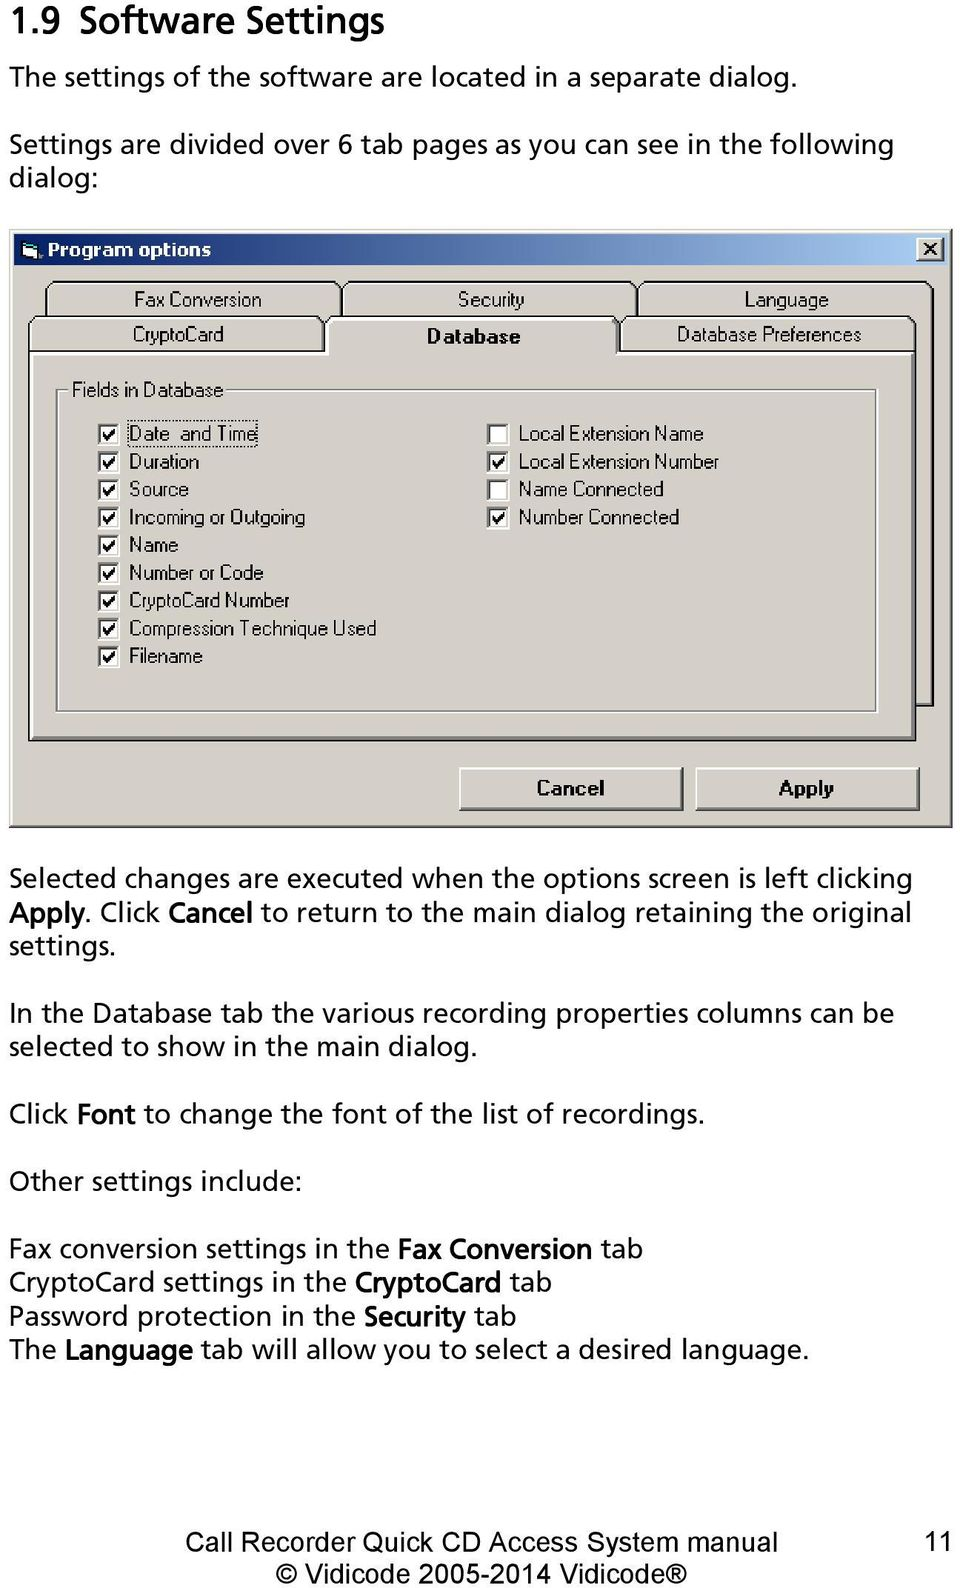 Click Cancel to return to the main dialog retaining the original settings.